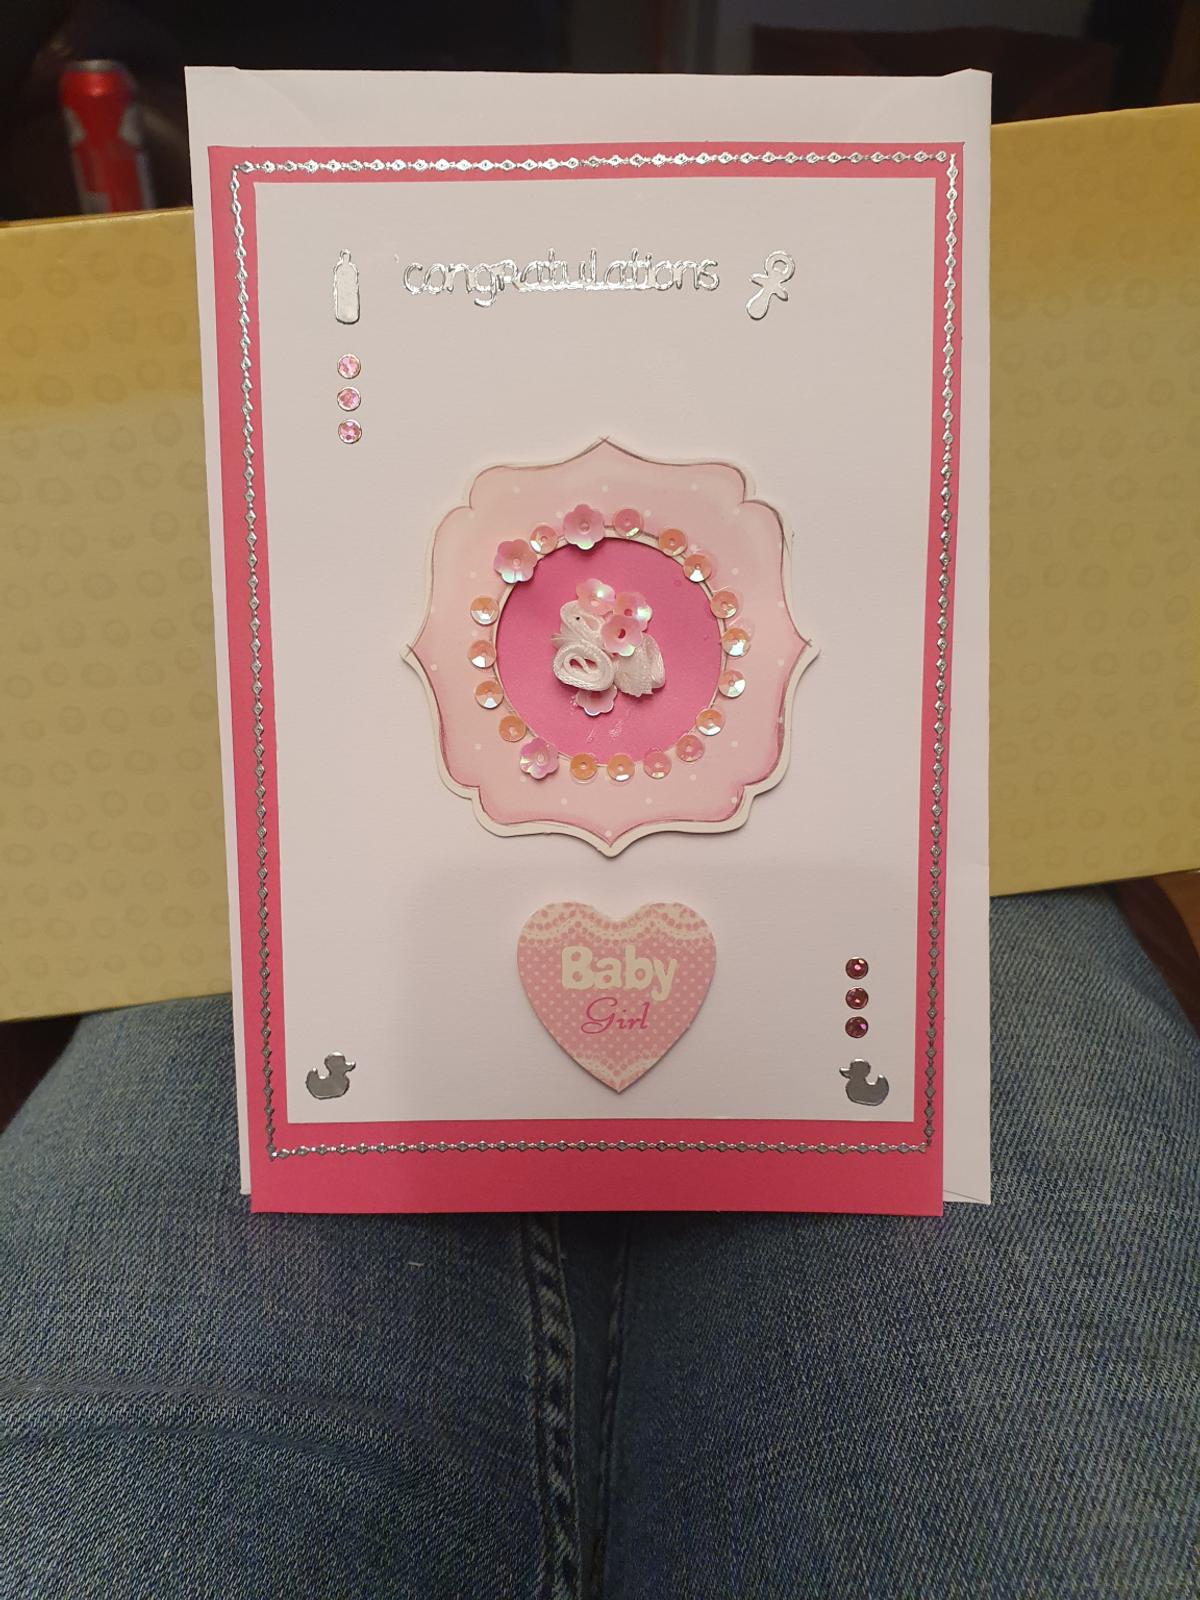 Congratulations baby girl card with envelope